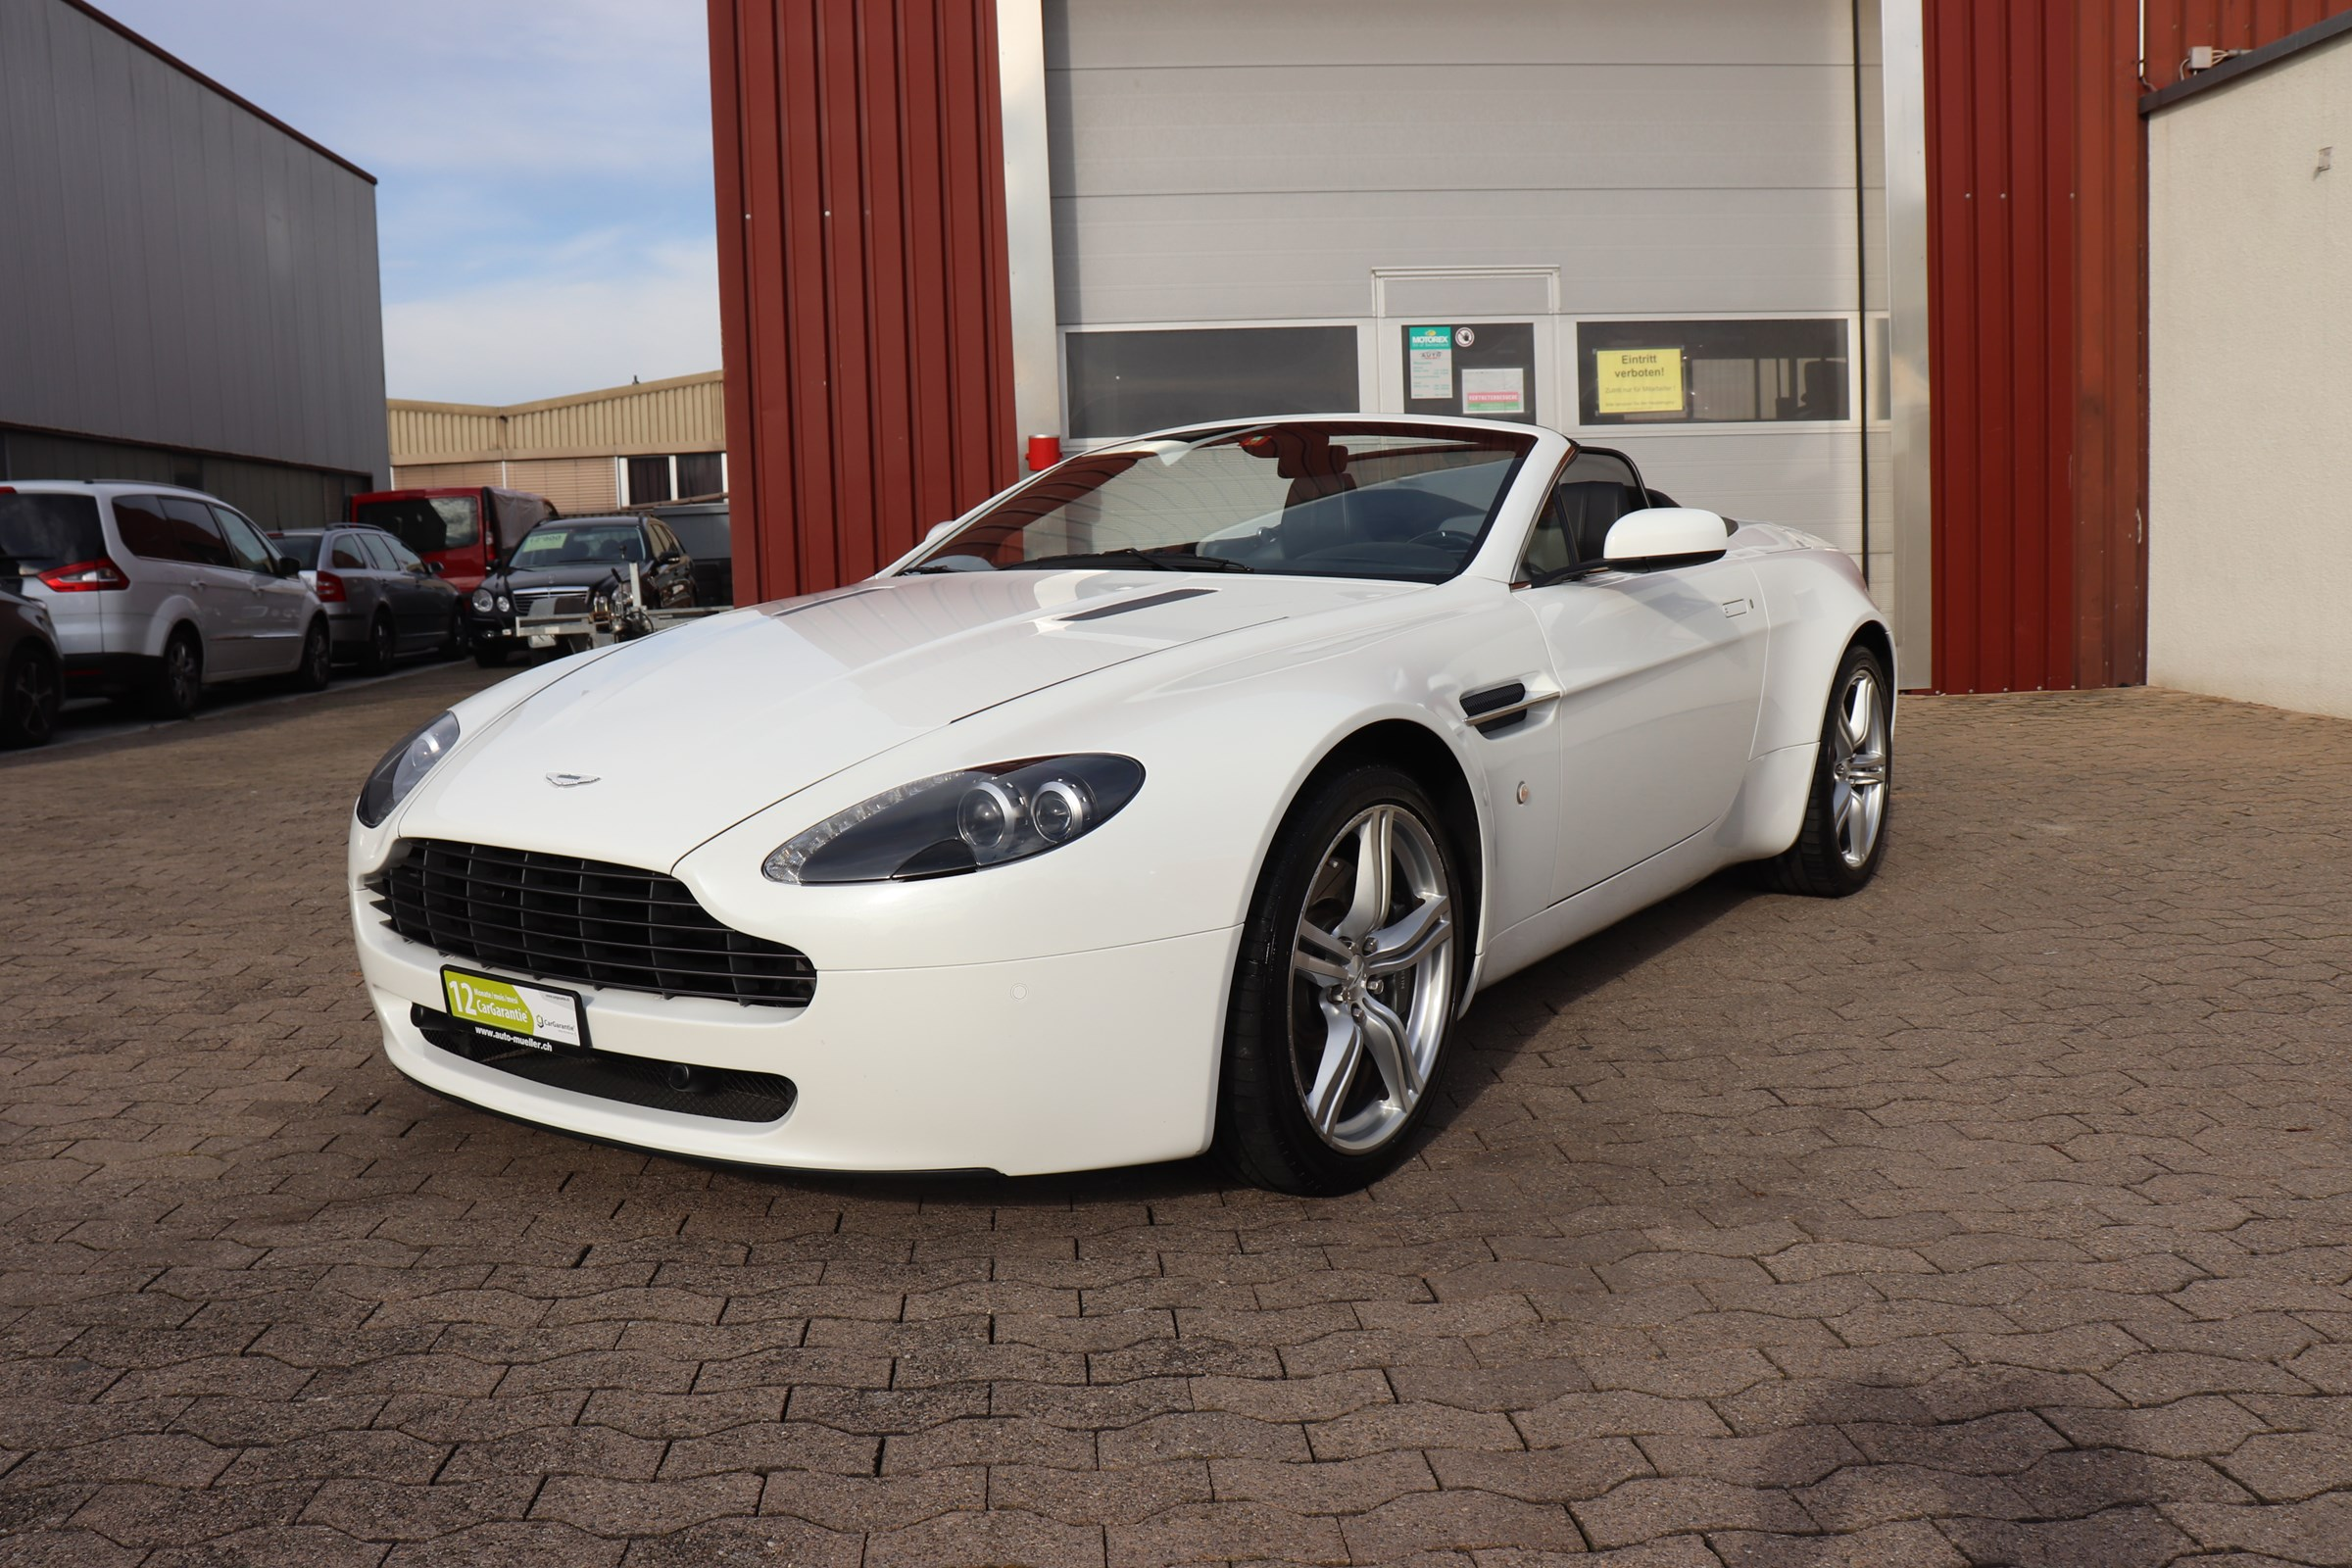 Buy Used Car Convertible Aston Martin V8 V12 Vantage V8 Vantage 4 7 Sportshift 49900 Km At 57900 Chf On Carforyou Ch